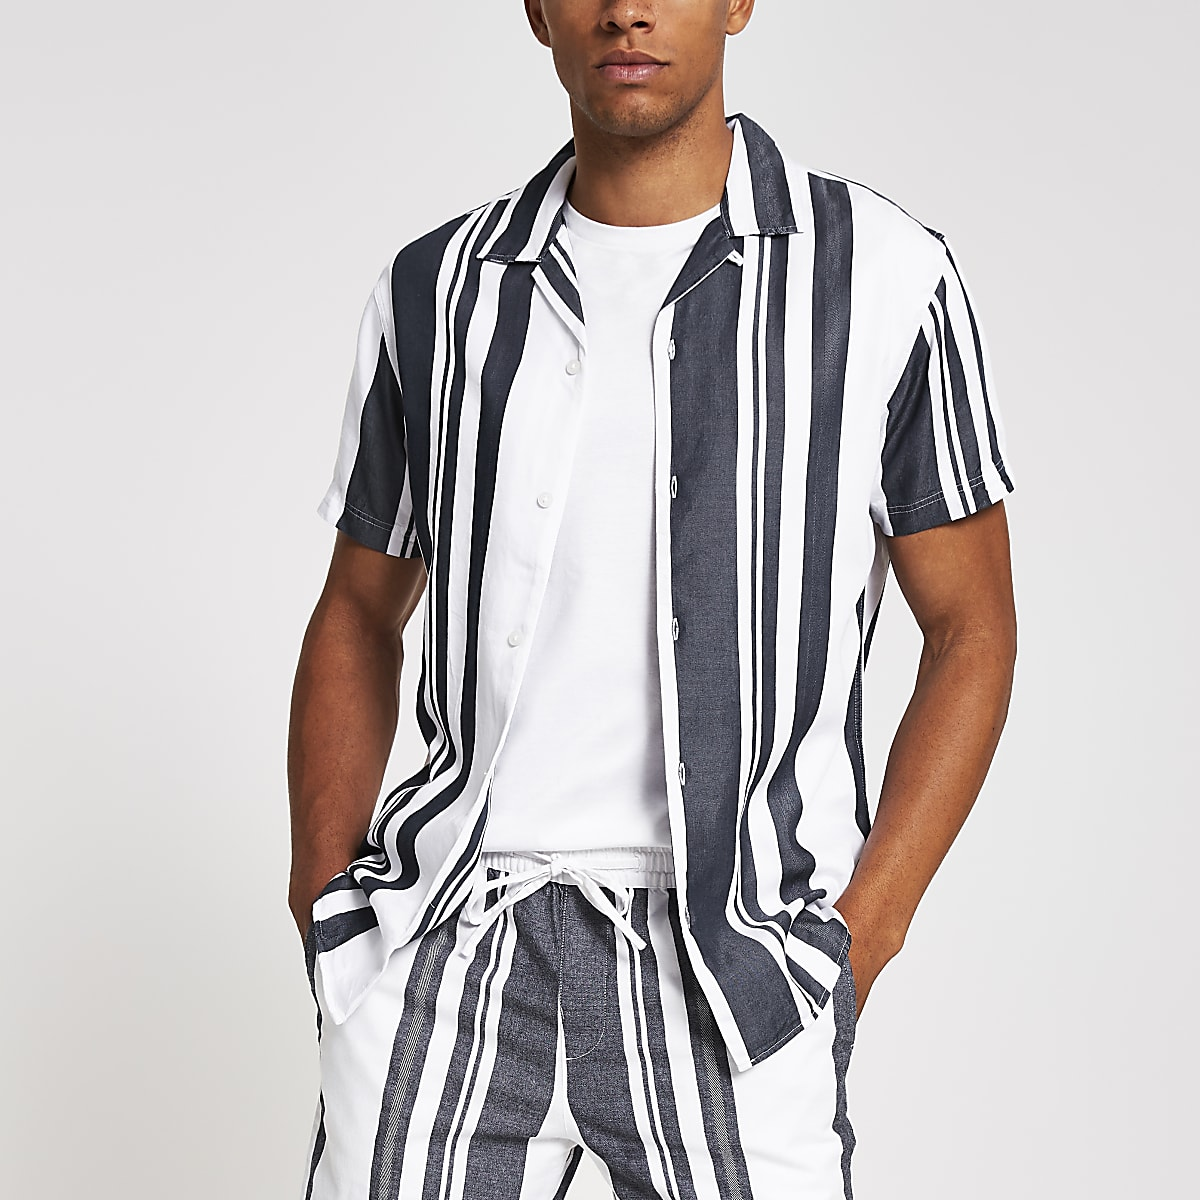 Selected Homme navy stripe shirt